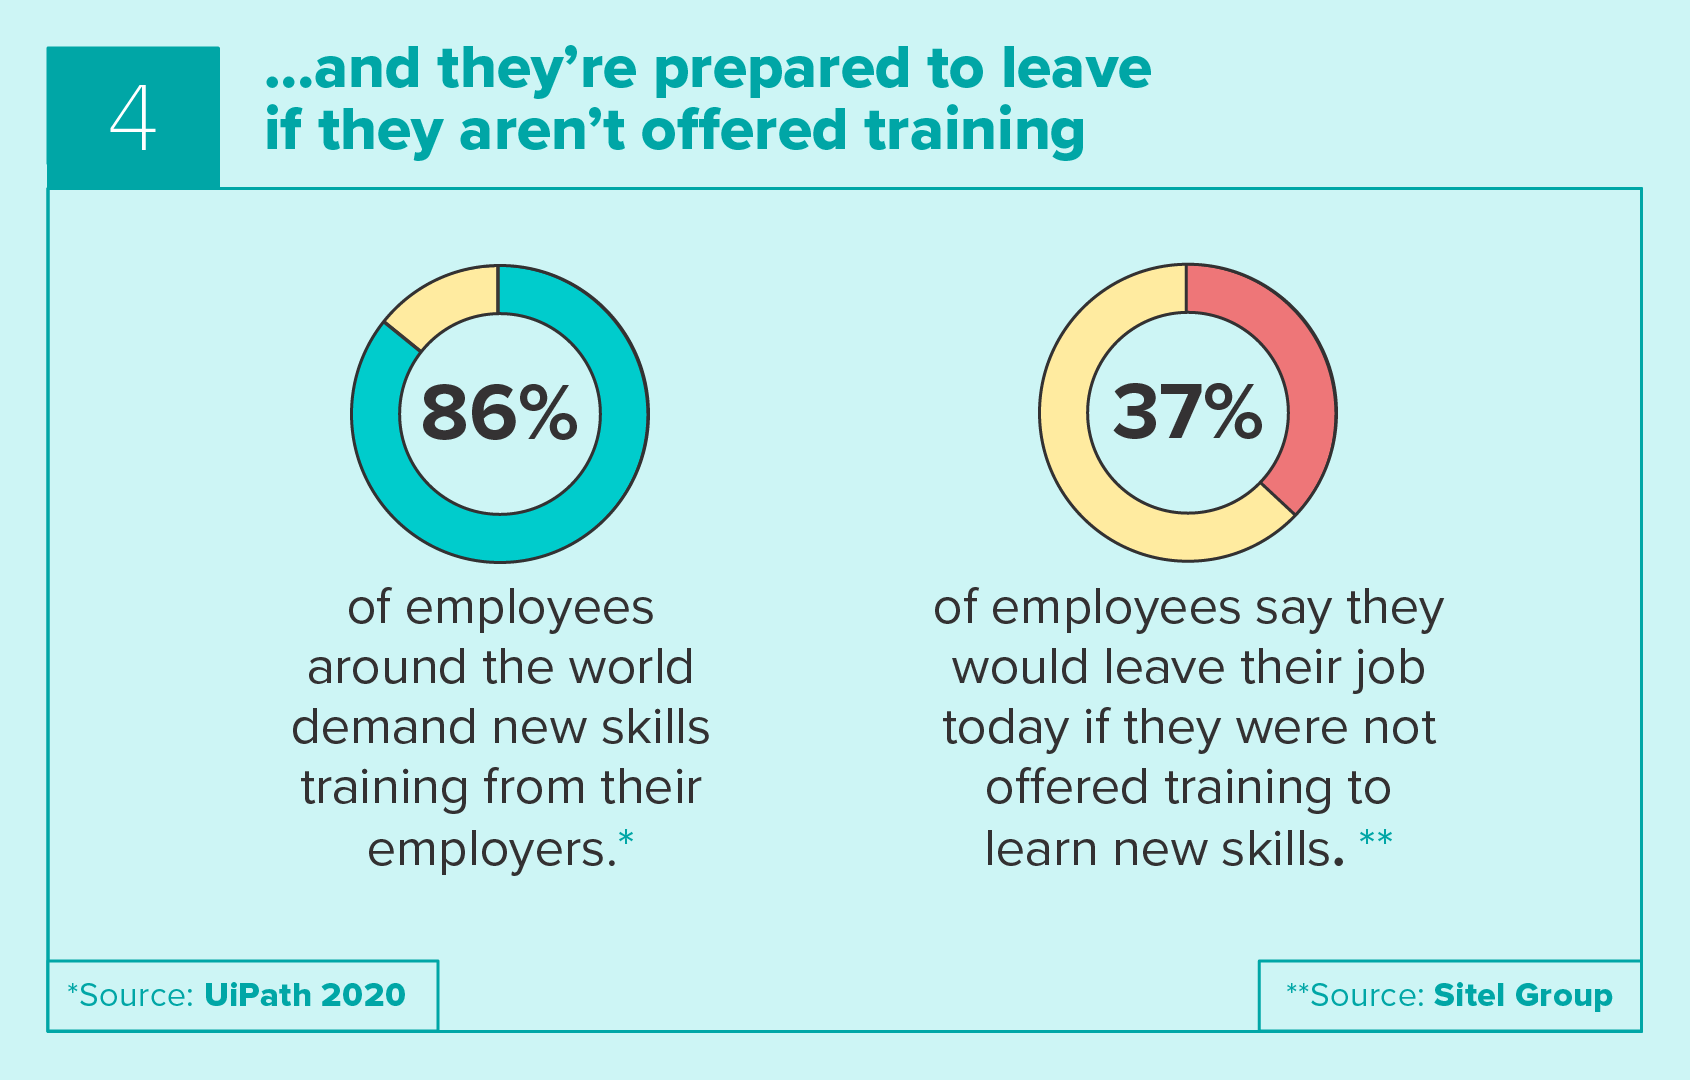 Workers may leave if they aren't offered training